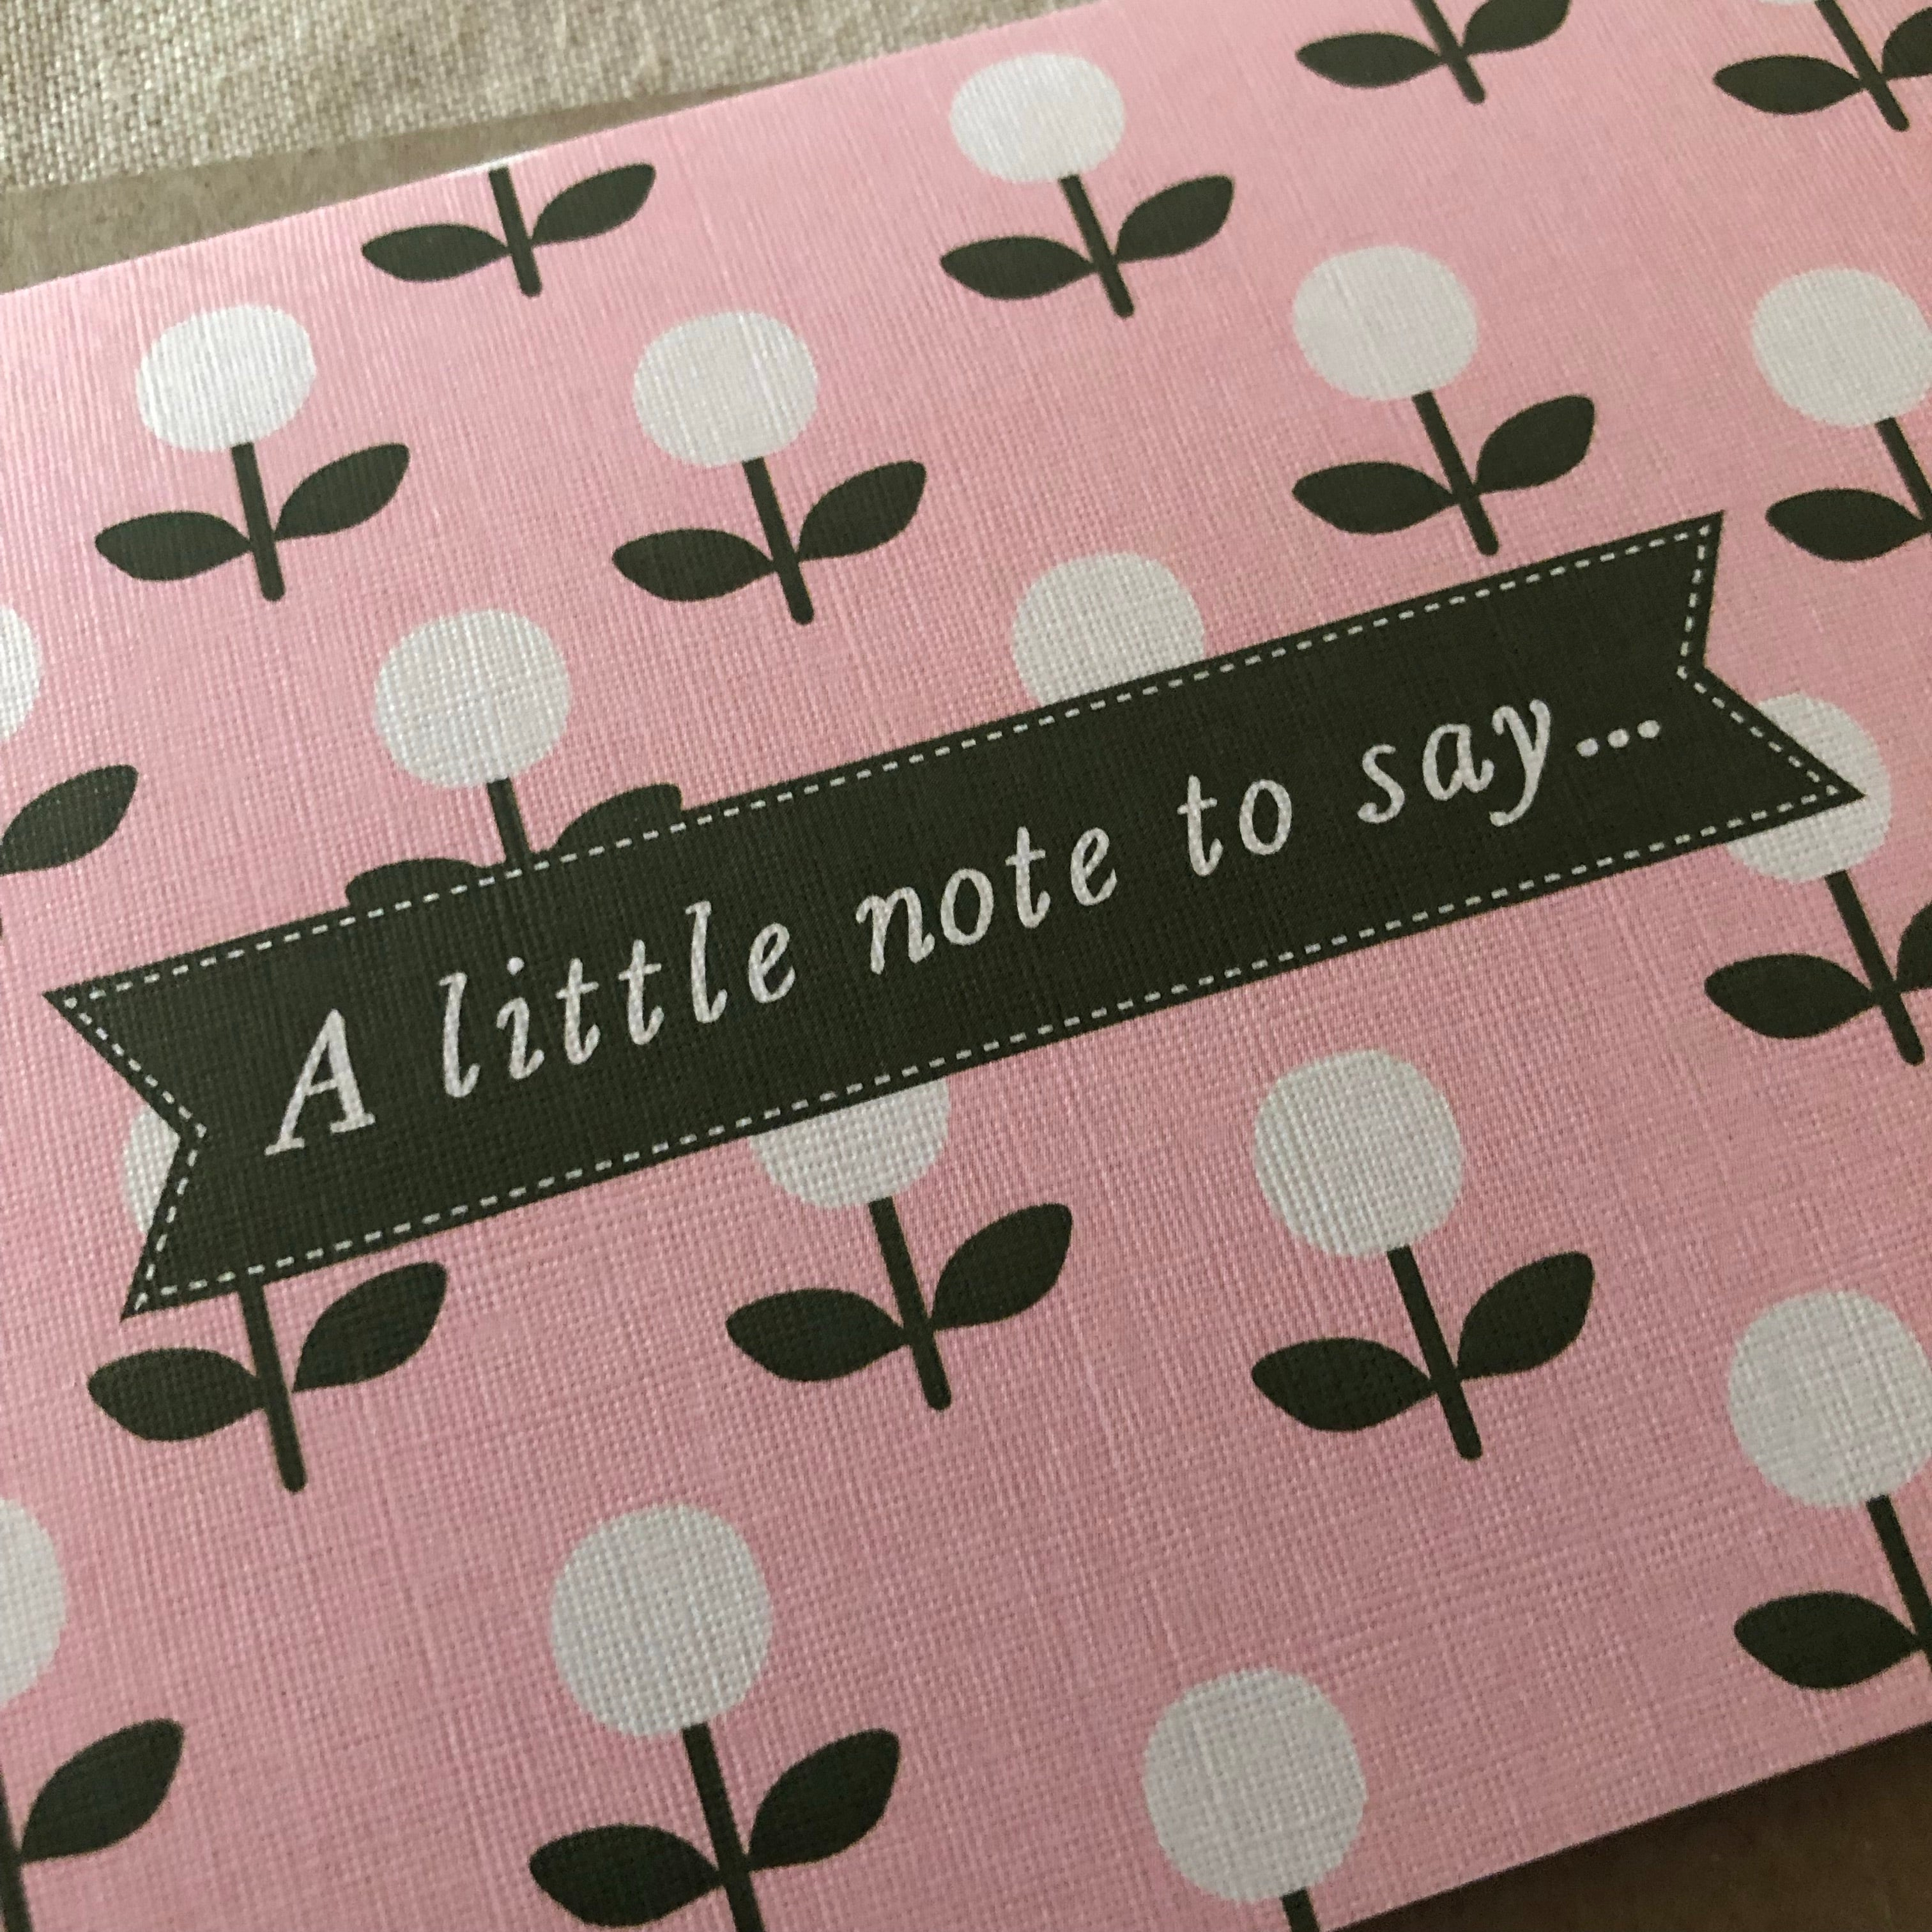 A Little Note to Say Card